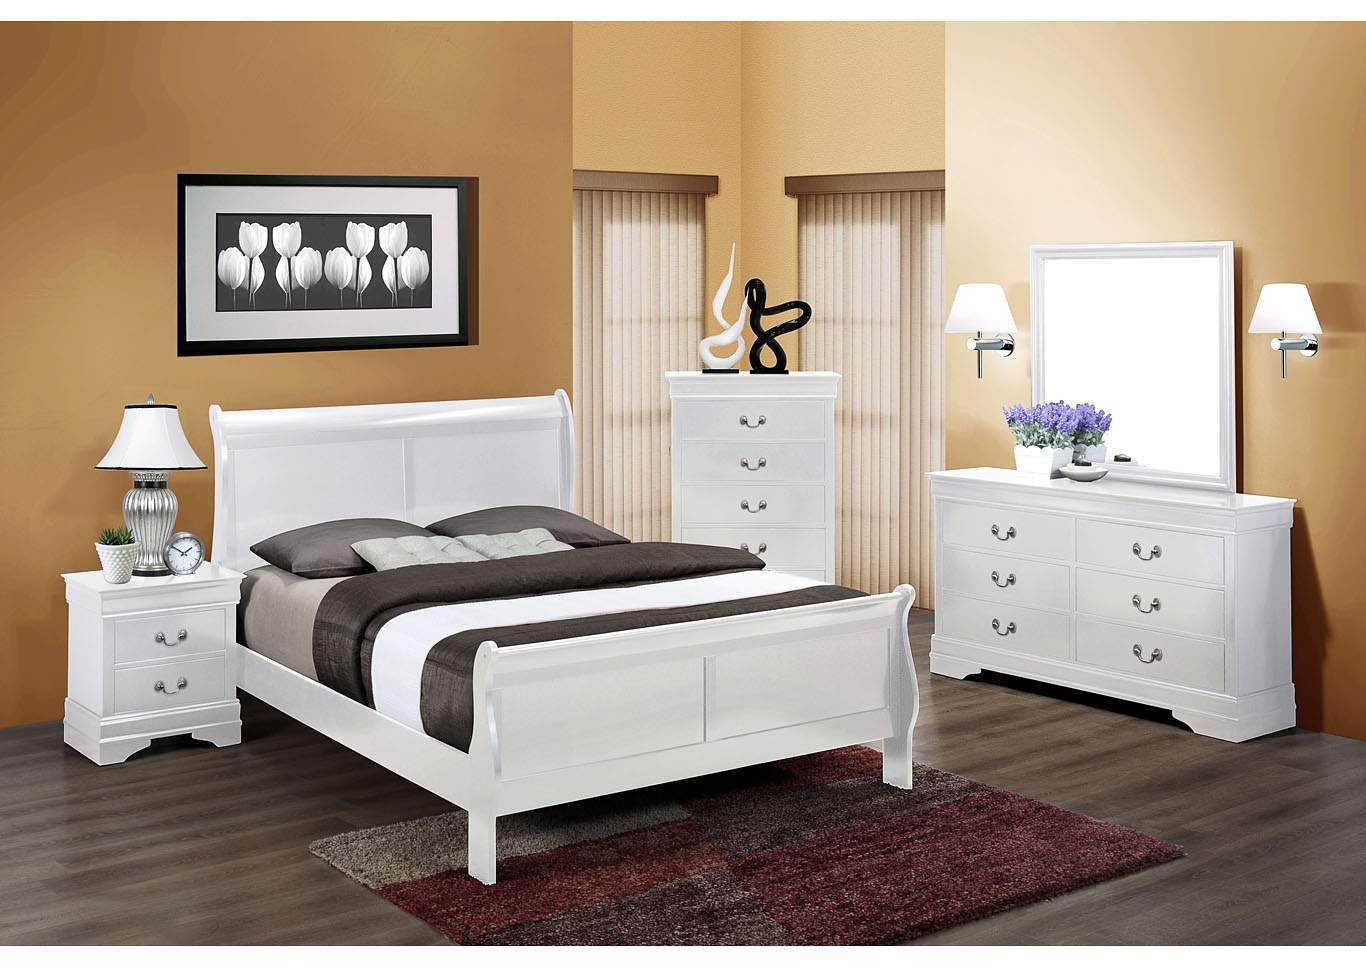 Louis Philip White Full Sleigh Bed w/6 Drawer Dresser, Mirror and Nightstand,Crown Mark